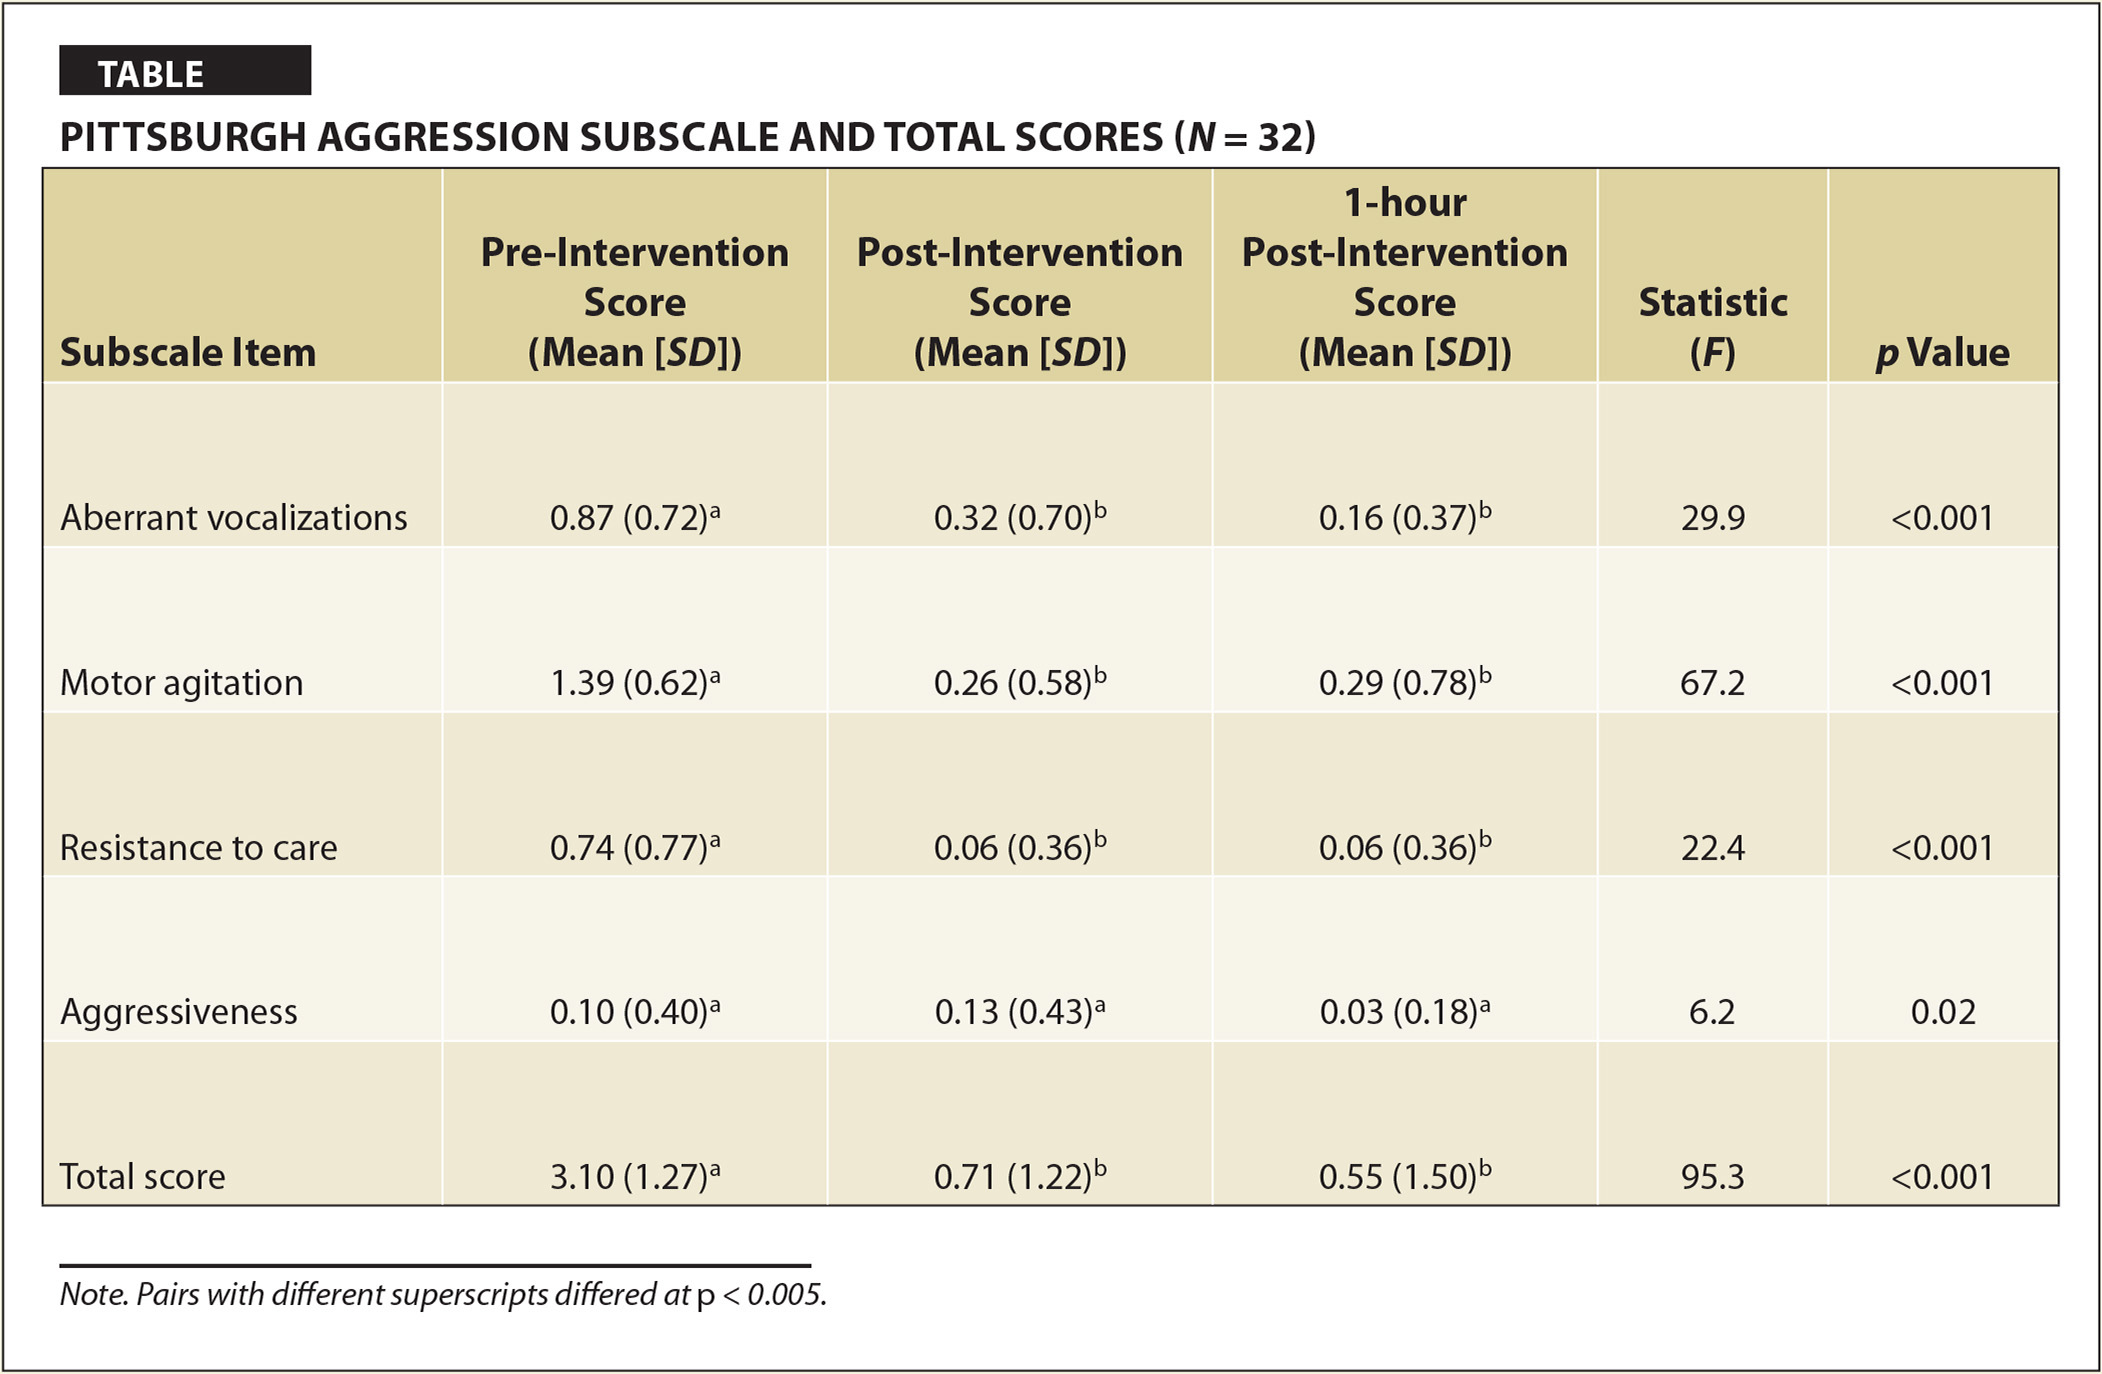 Pittsburgh Aggression Subscale and Total Scores (N = 32)